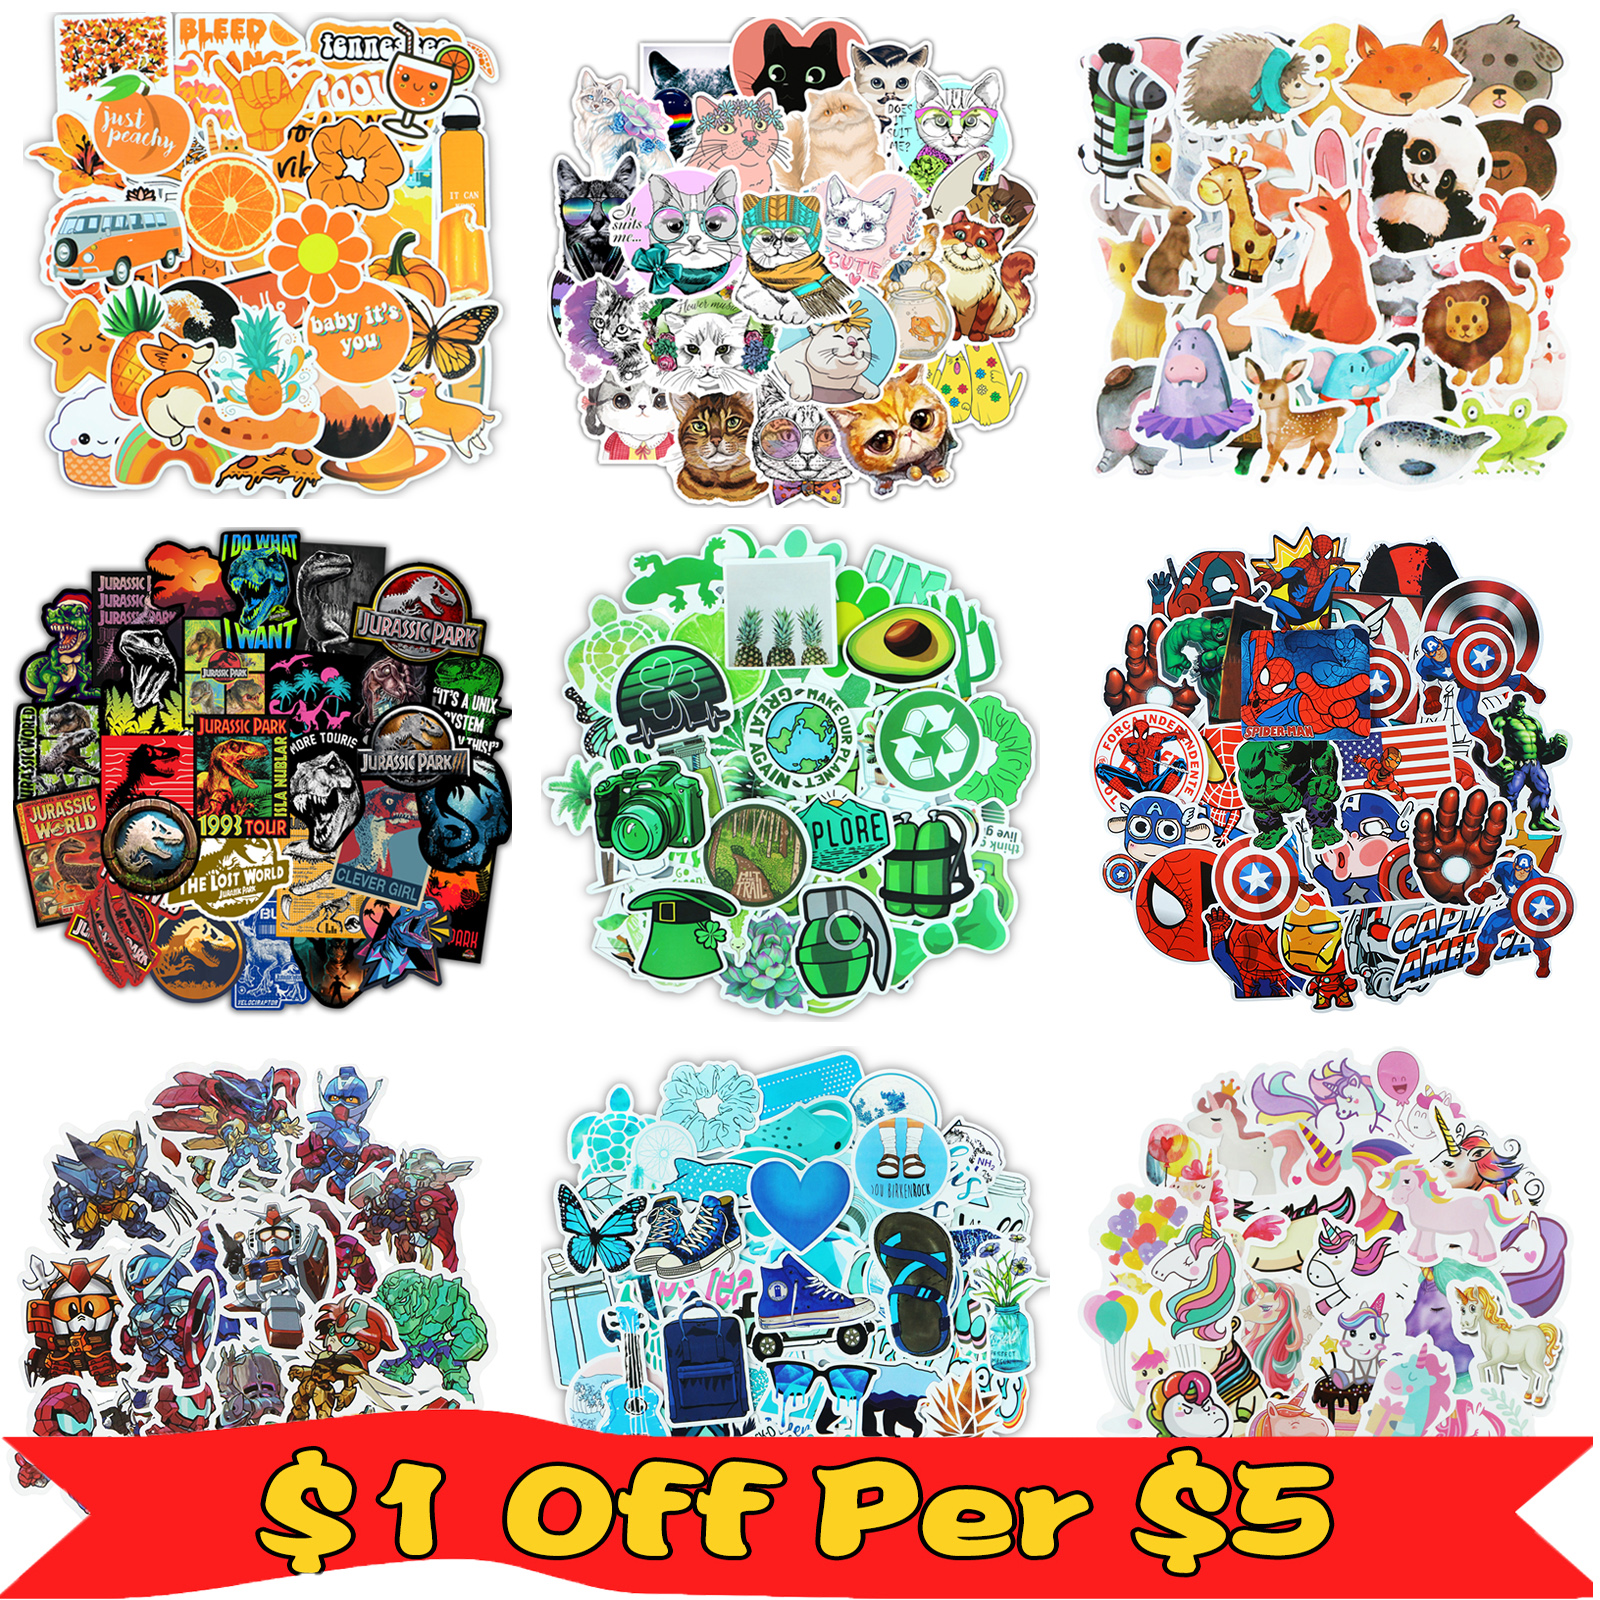 52/50 Pcs/Lot VSCO Stickers Mixed Cartoon Animal Super Hero Sticker For Water Bottle Luggage Notebook Skateboard Kids Toy